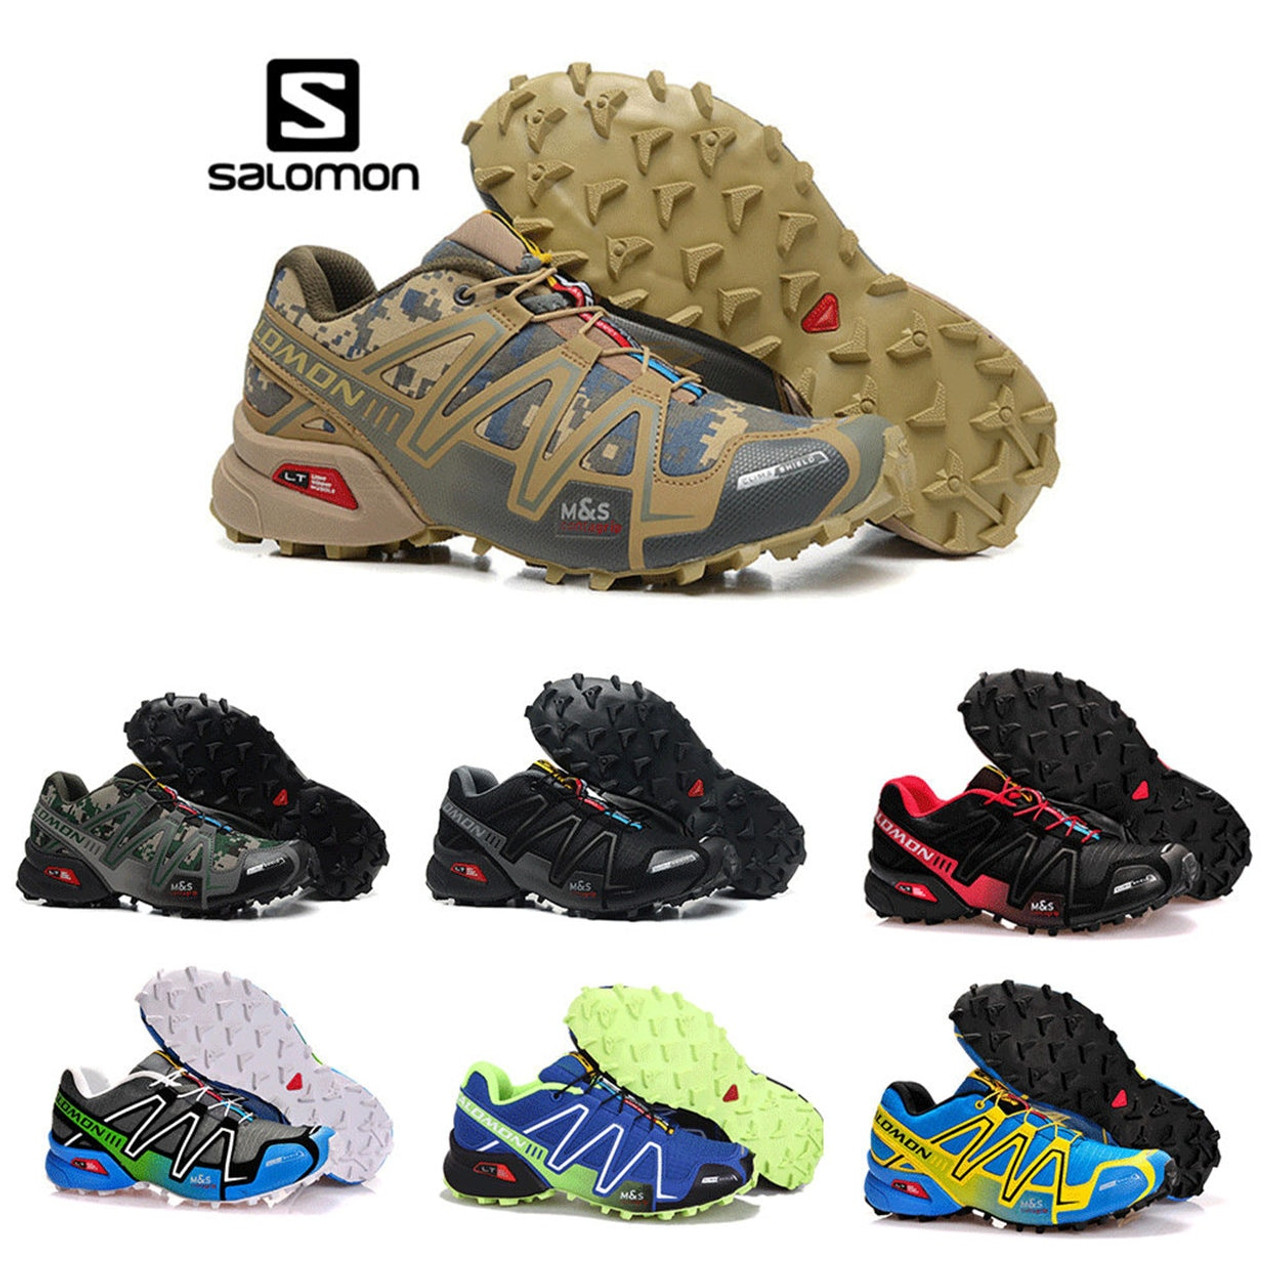 bas prix ed812 b50a9 Salomon Speed Cross 3 CS cross running shoes Brand Sneakers Male Athletic  Sport Shoes SPEED Fencing Shoes